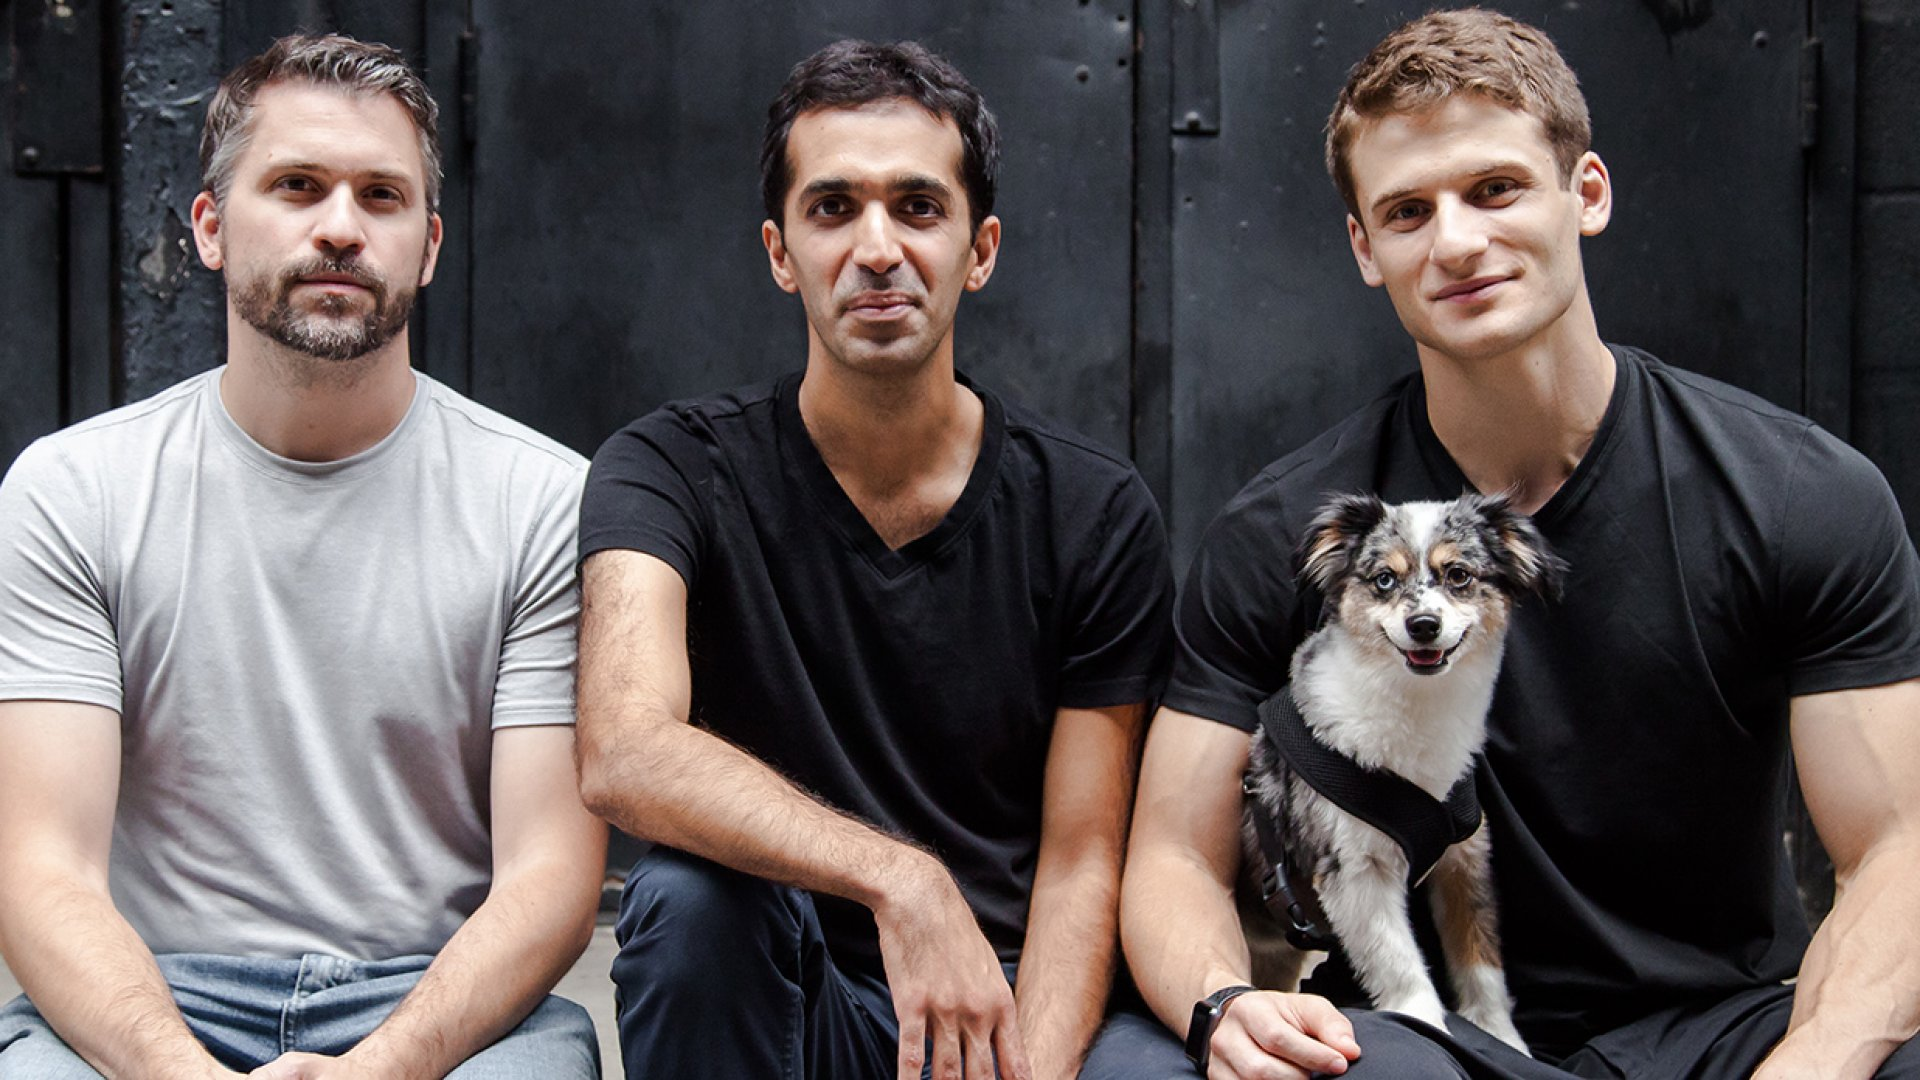 Roman co-founders, from left: Rob Schutz, Saman Rahmanian, and Zachariah Reitano.